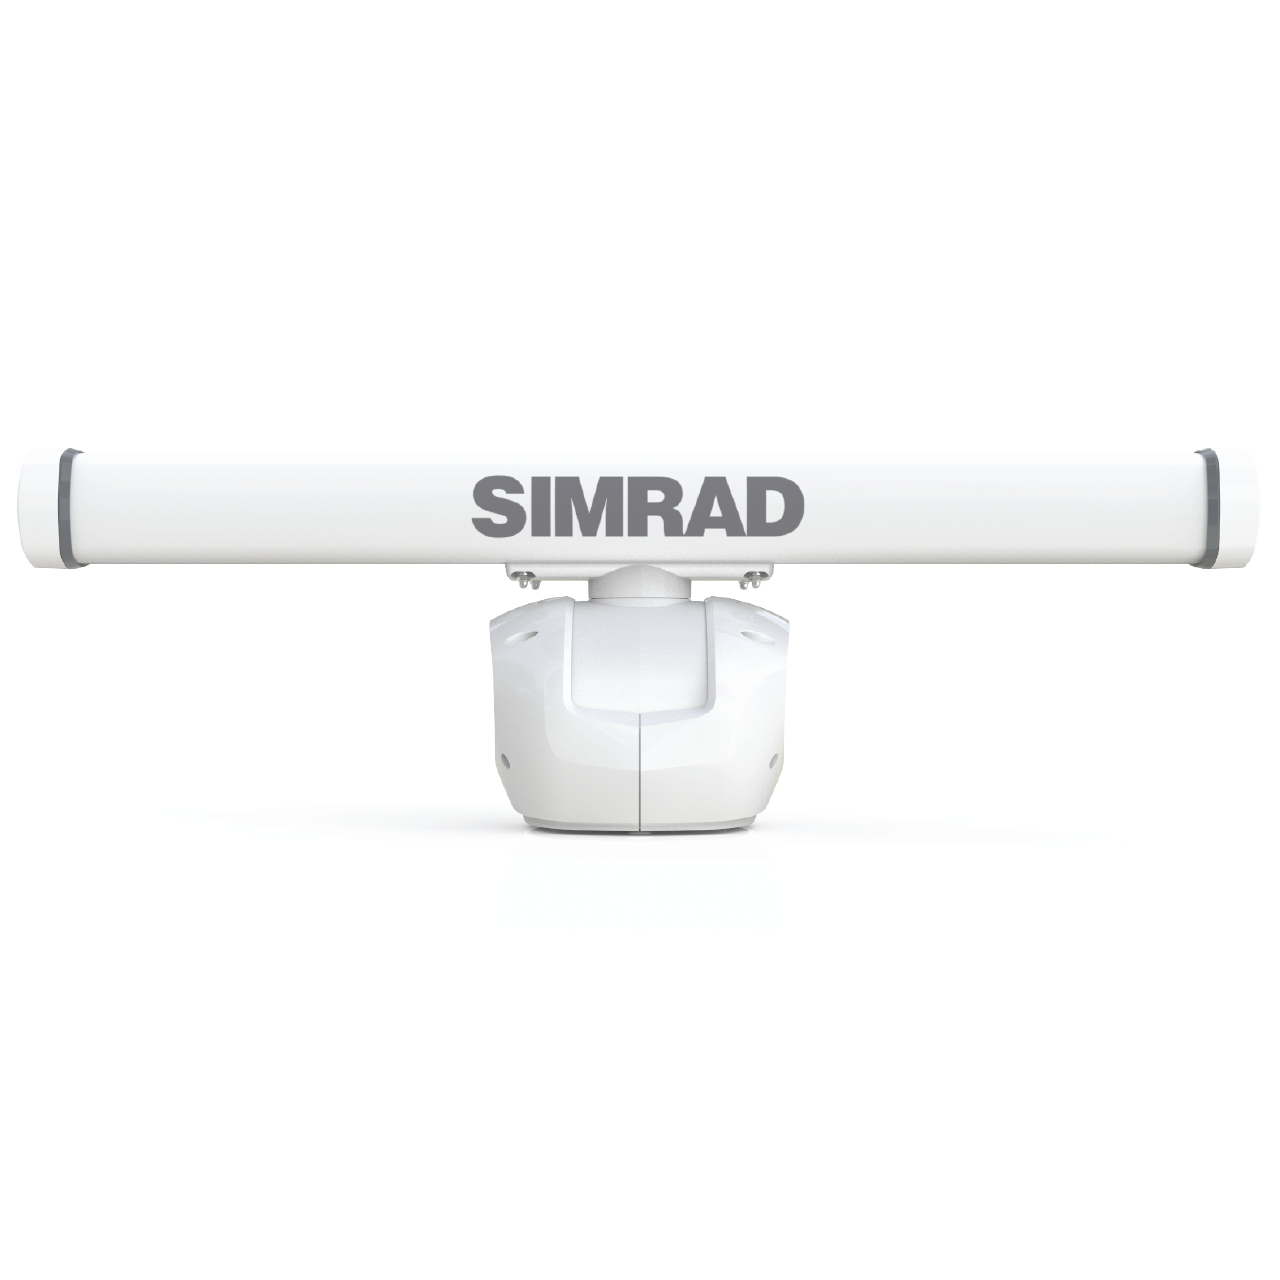 simrad halo 4 open array radar front view